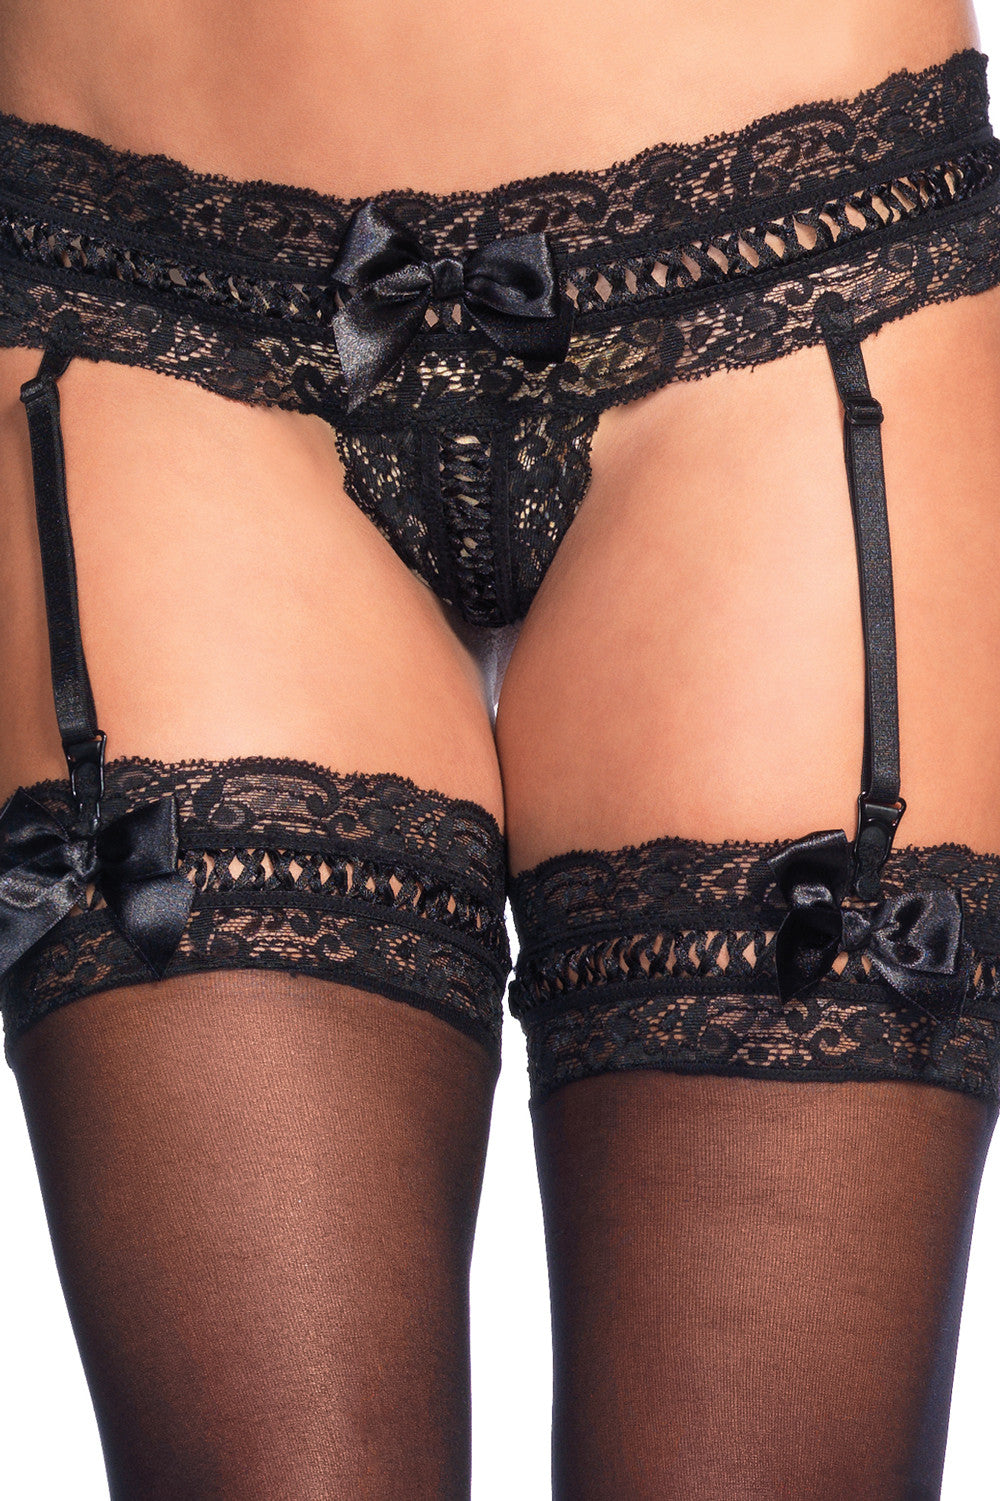 Ribbon Lace Garter G-String & Stockings